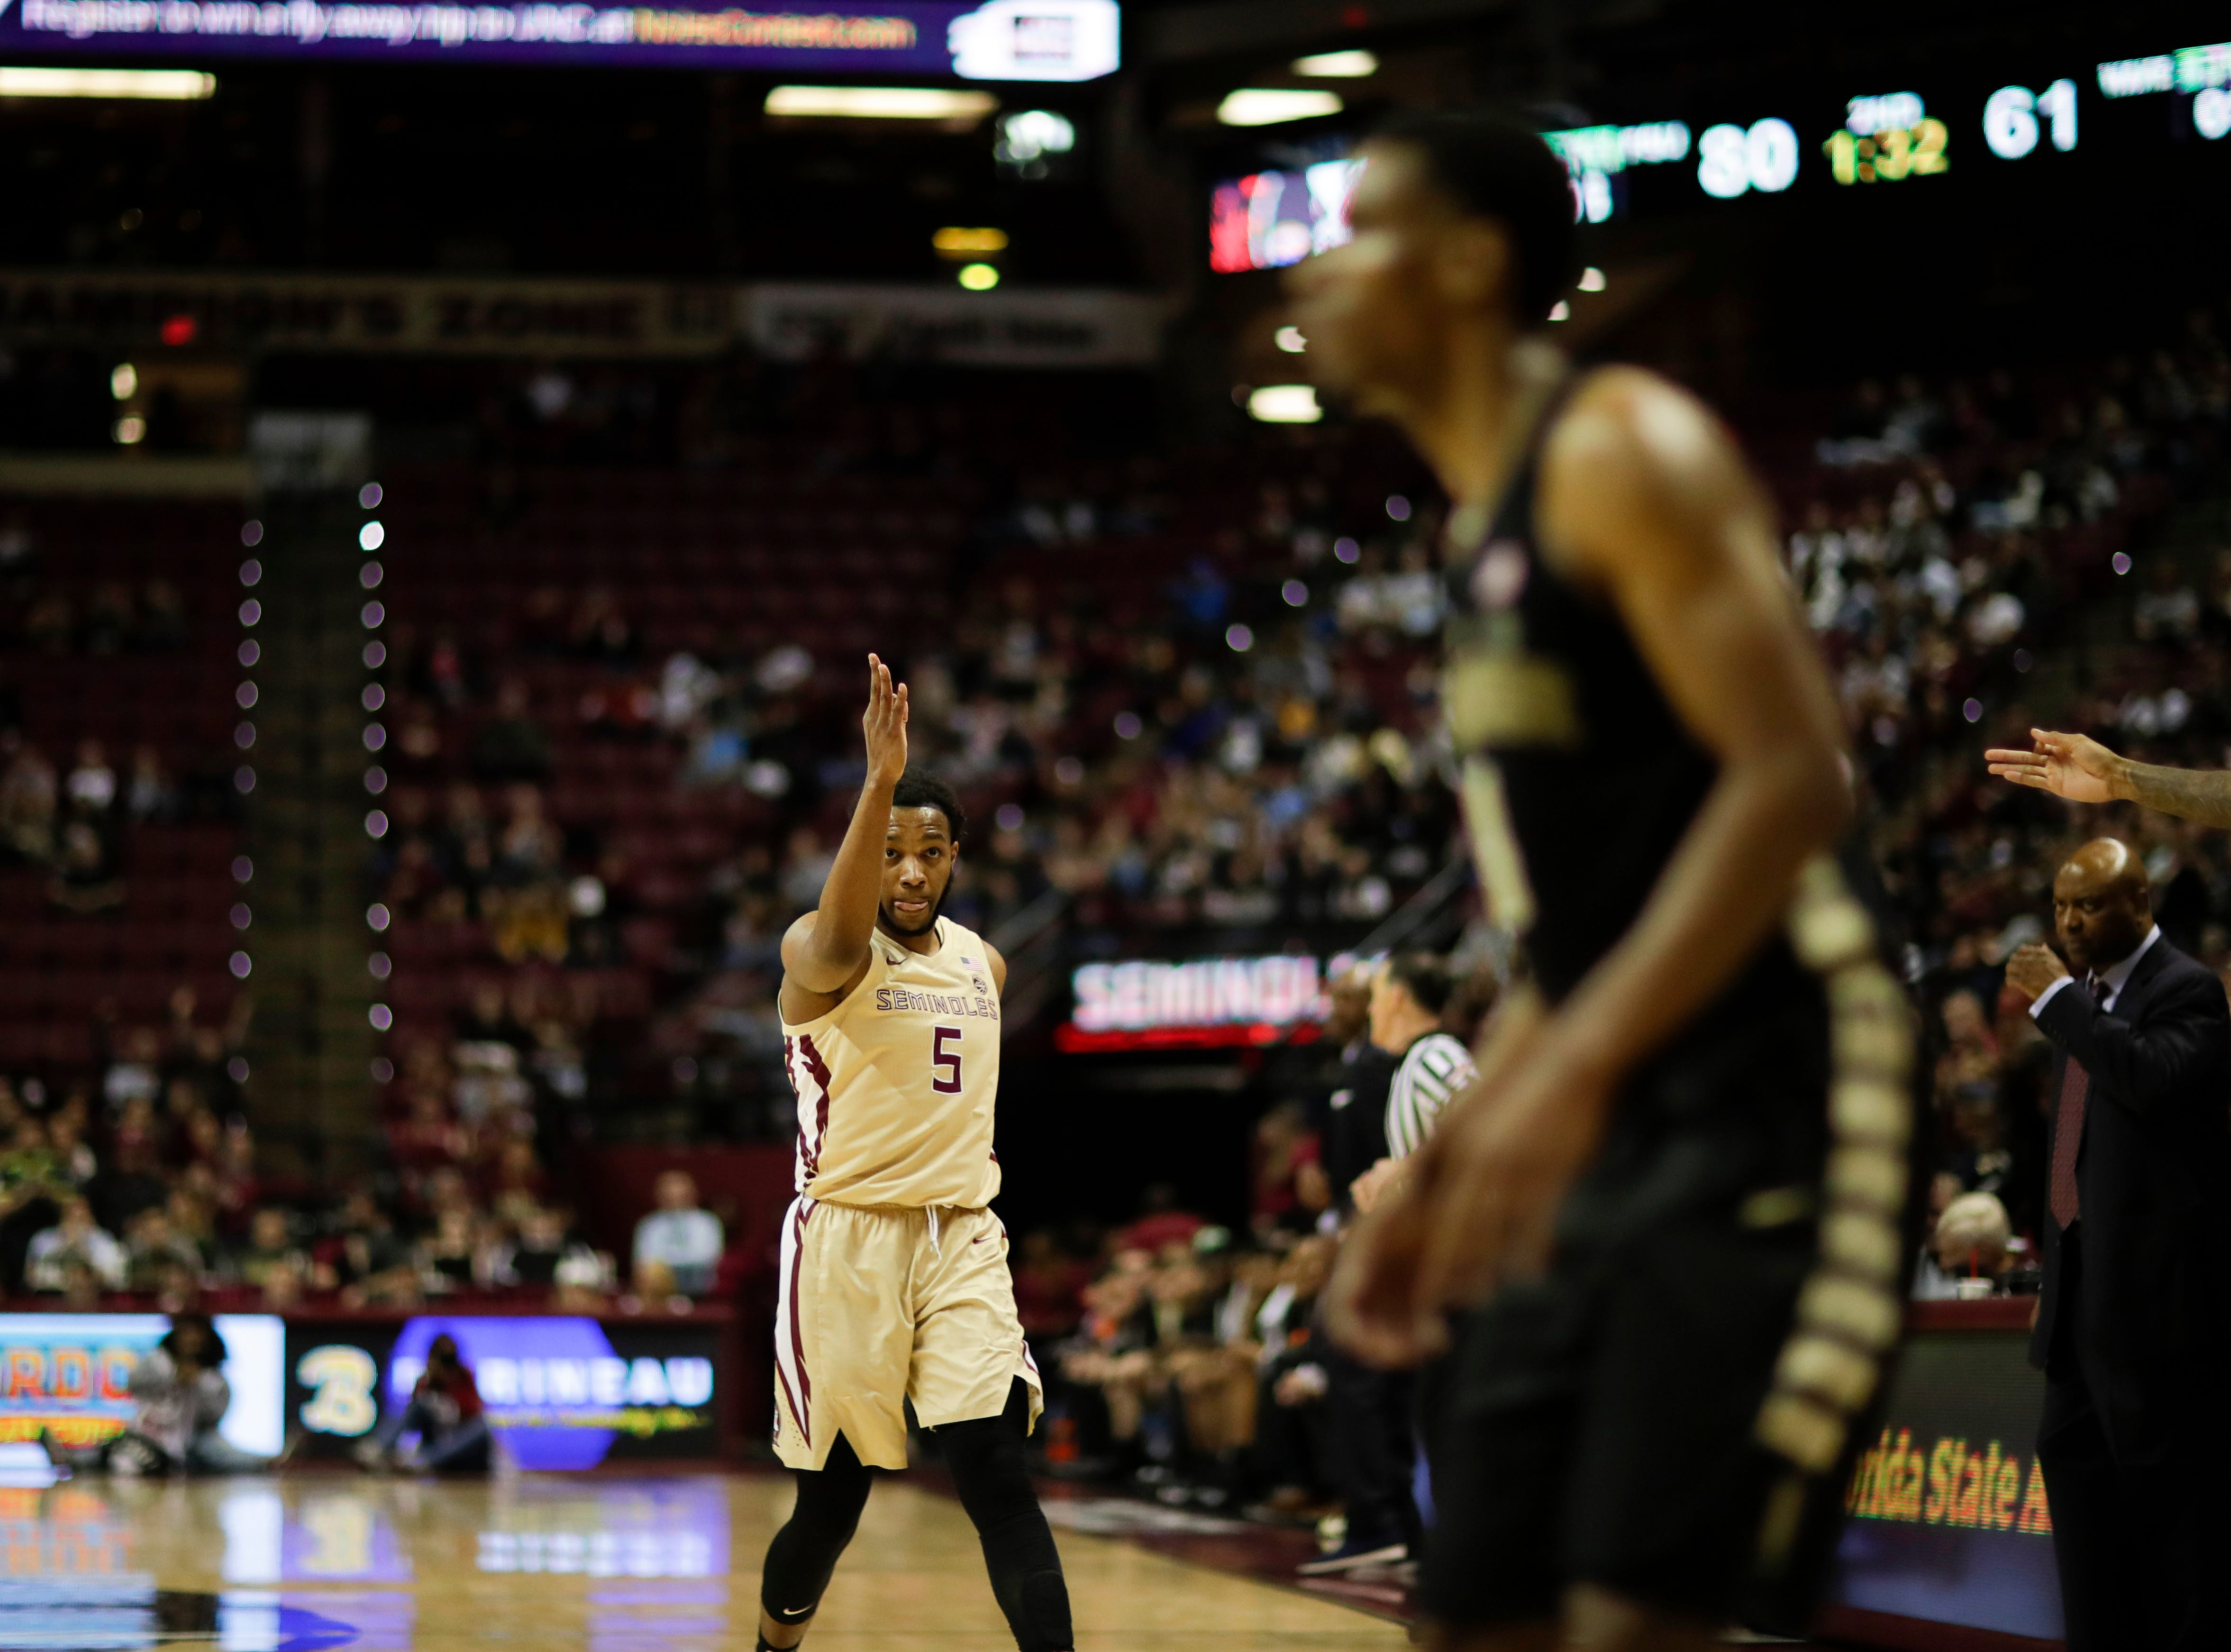 """Florida State Seminoles guard PJ Savoy (5) does """"the chop"""" after scoring during a game between FSU and Wake Forest at the Donald L. Tucker Civic Center Wednesday, Feb. 13, 2019."""